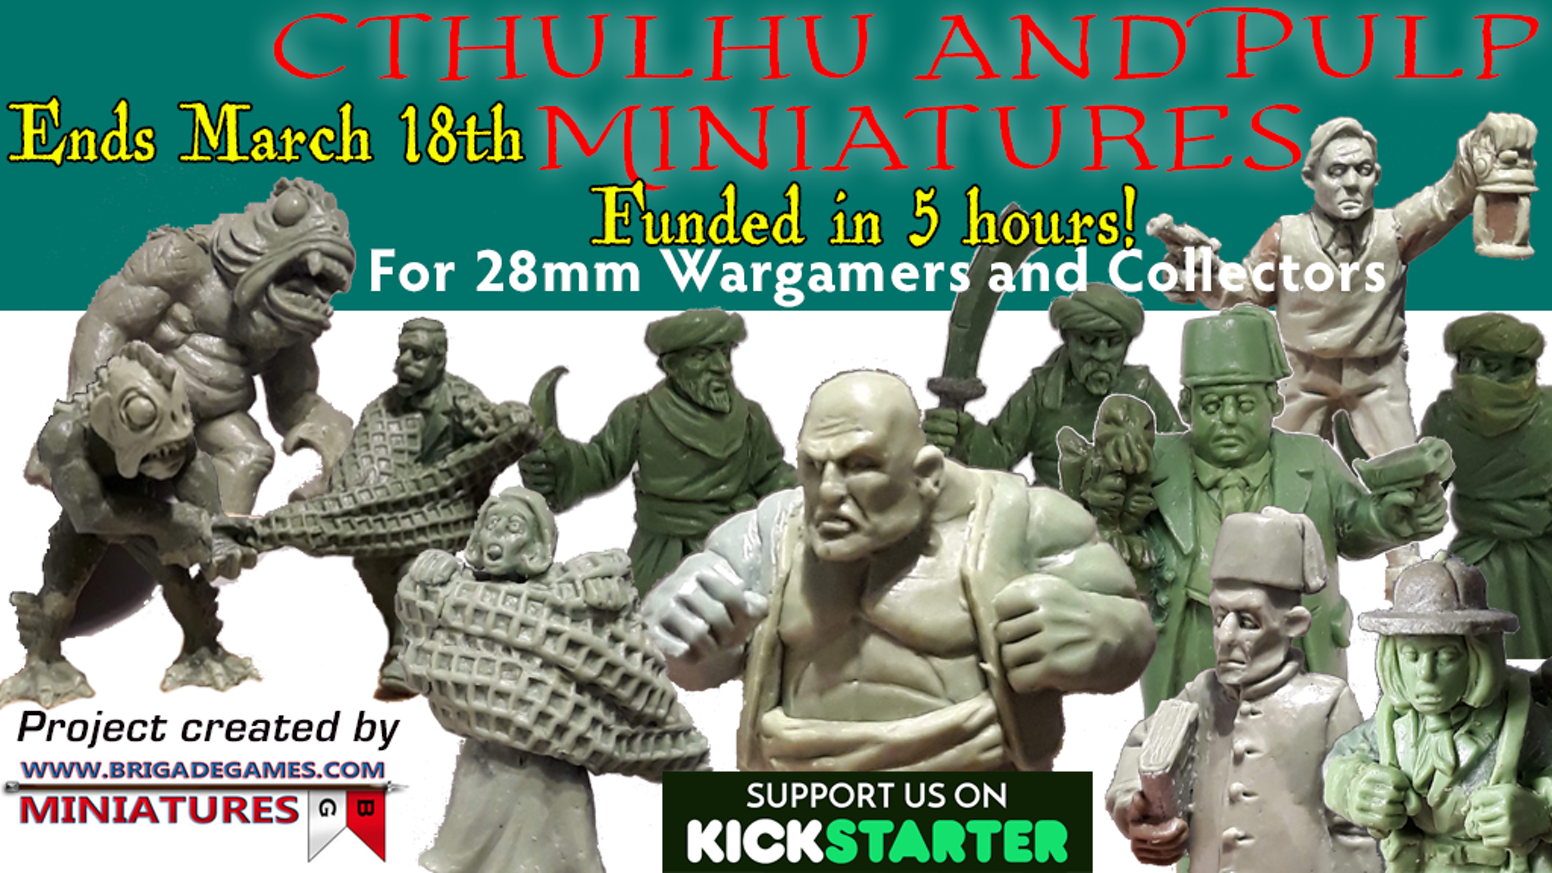 A collection of 28mm Cthulhu and Pulp Characters for wargamers and collectors.